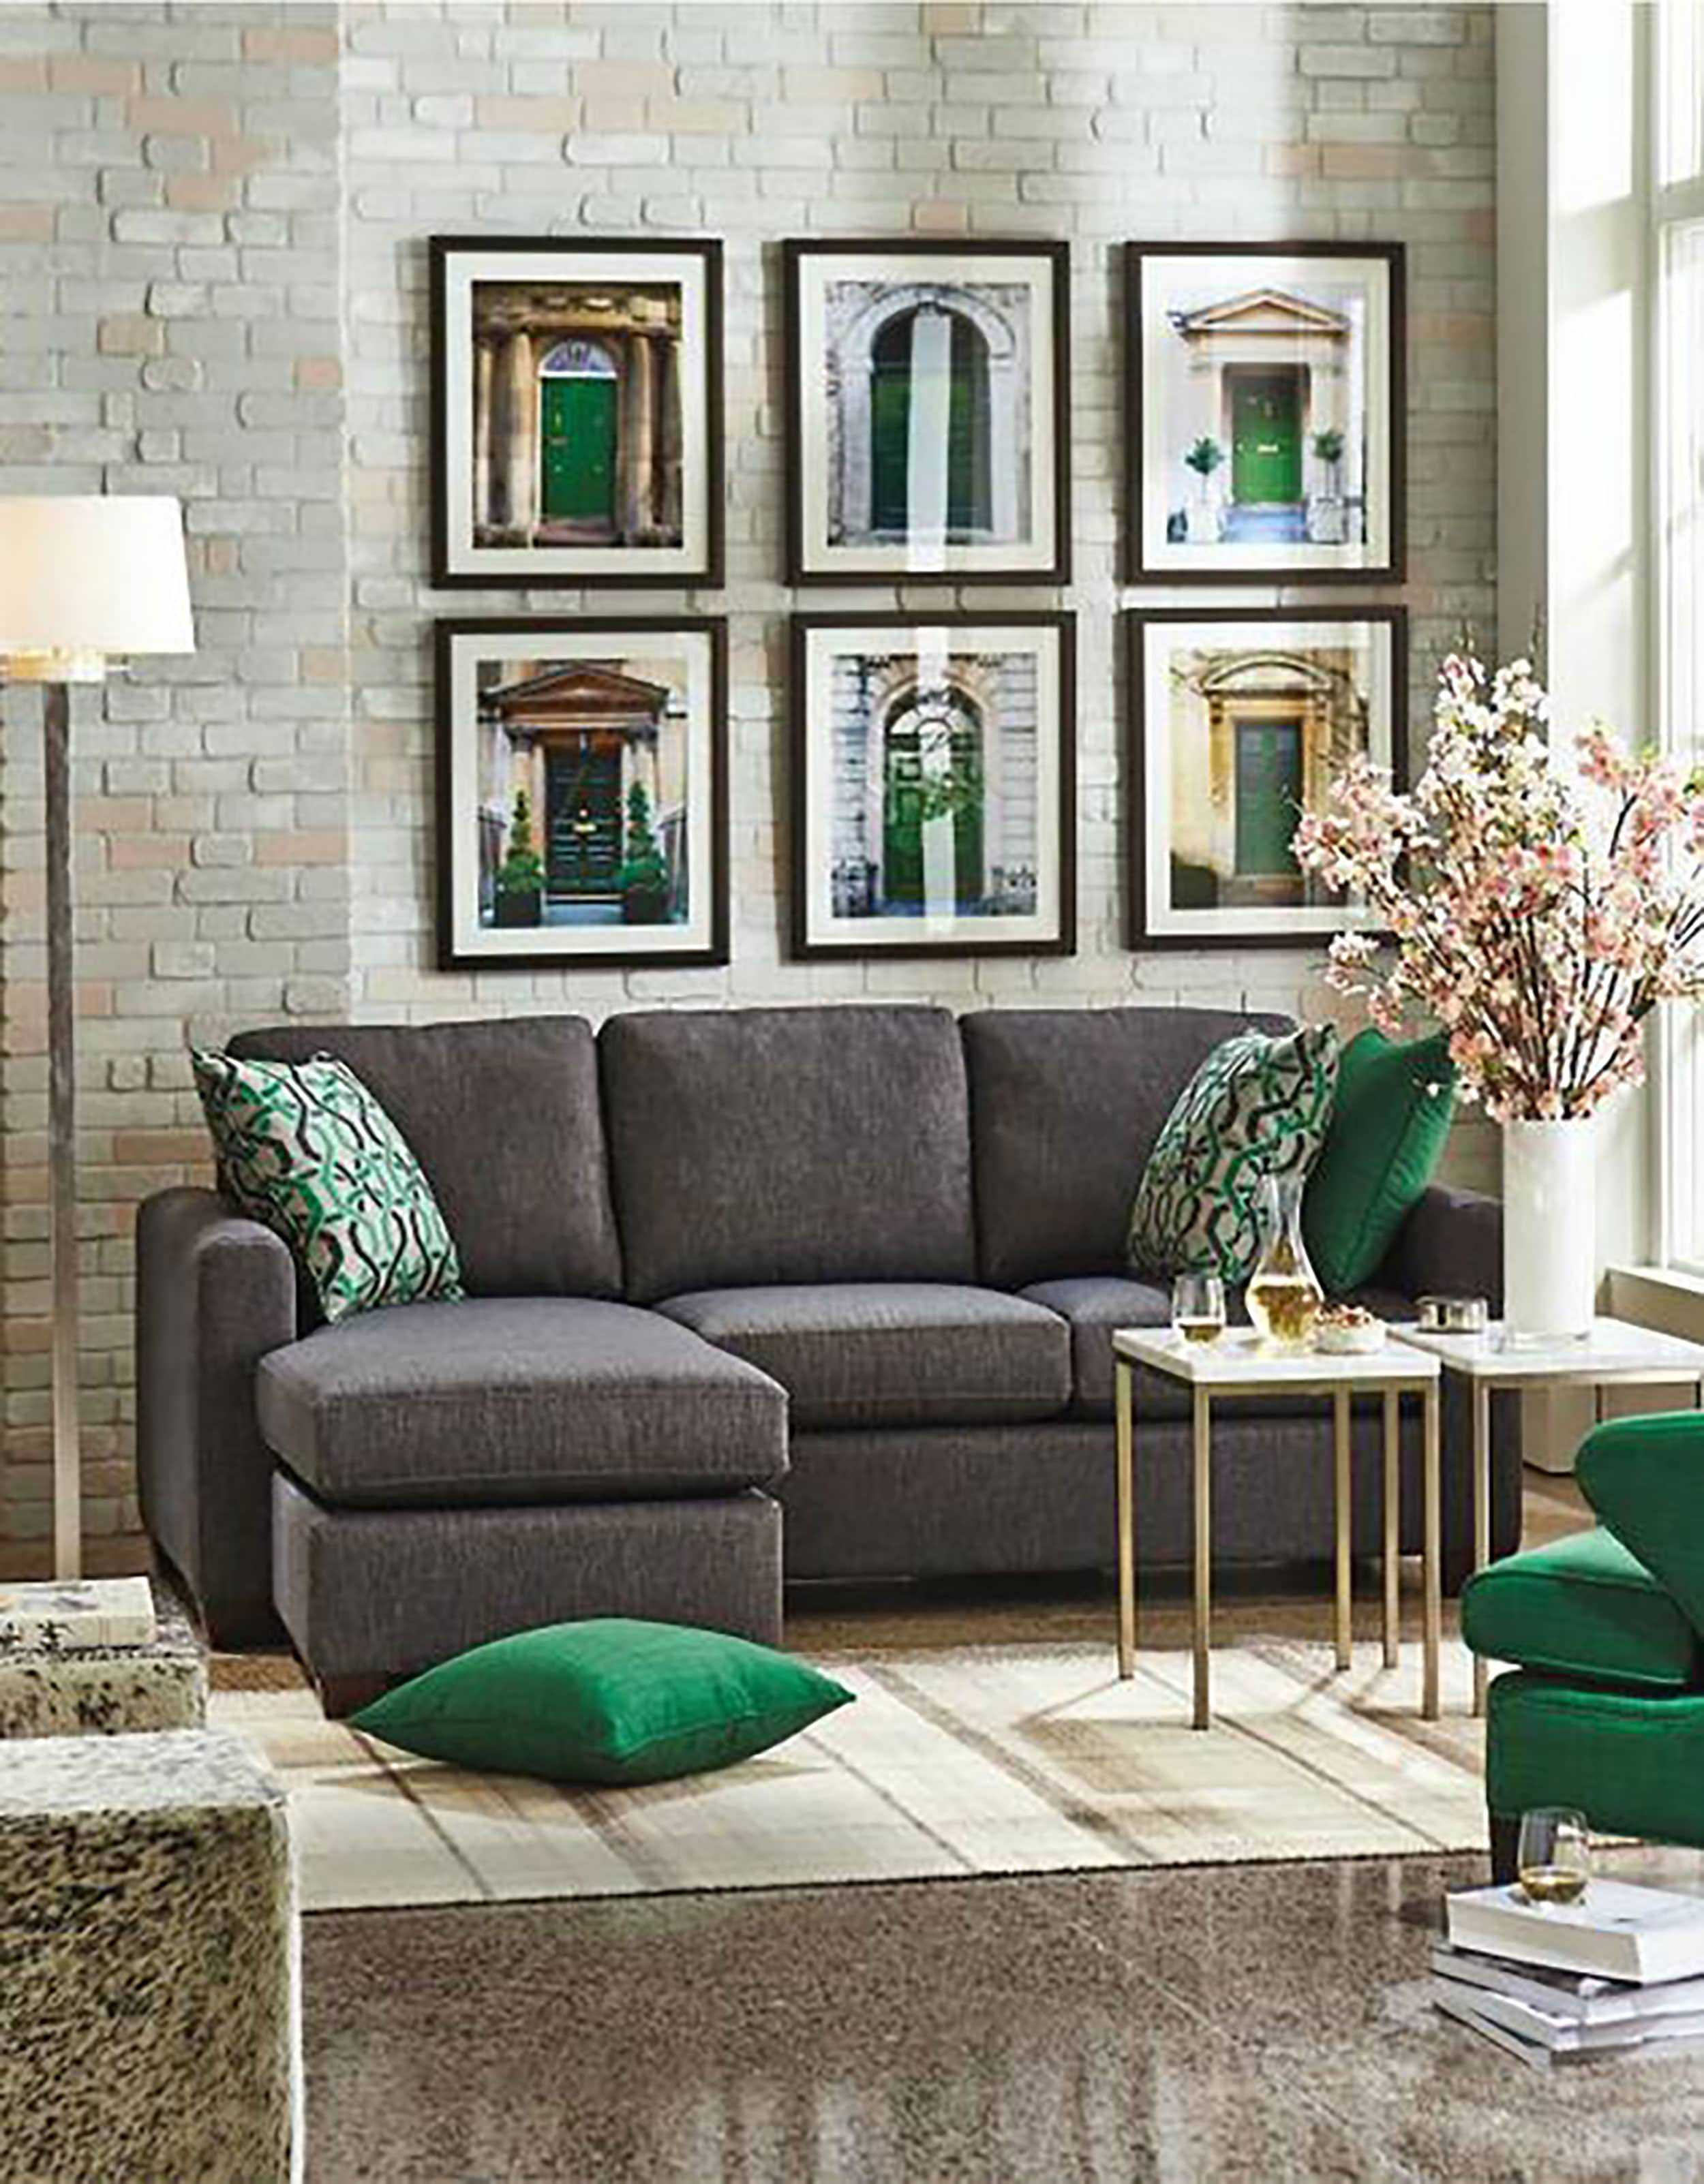 06 Charcoal Grey Sofa Grey Stone Floors And Emerald And Gold Details For A Chic And Sophisticated Look